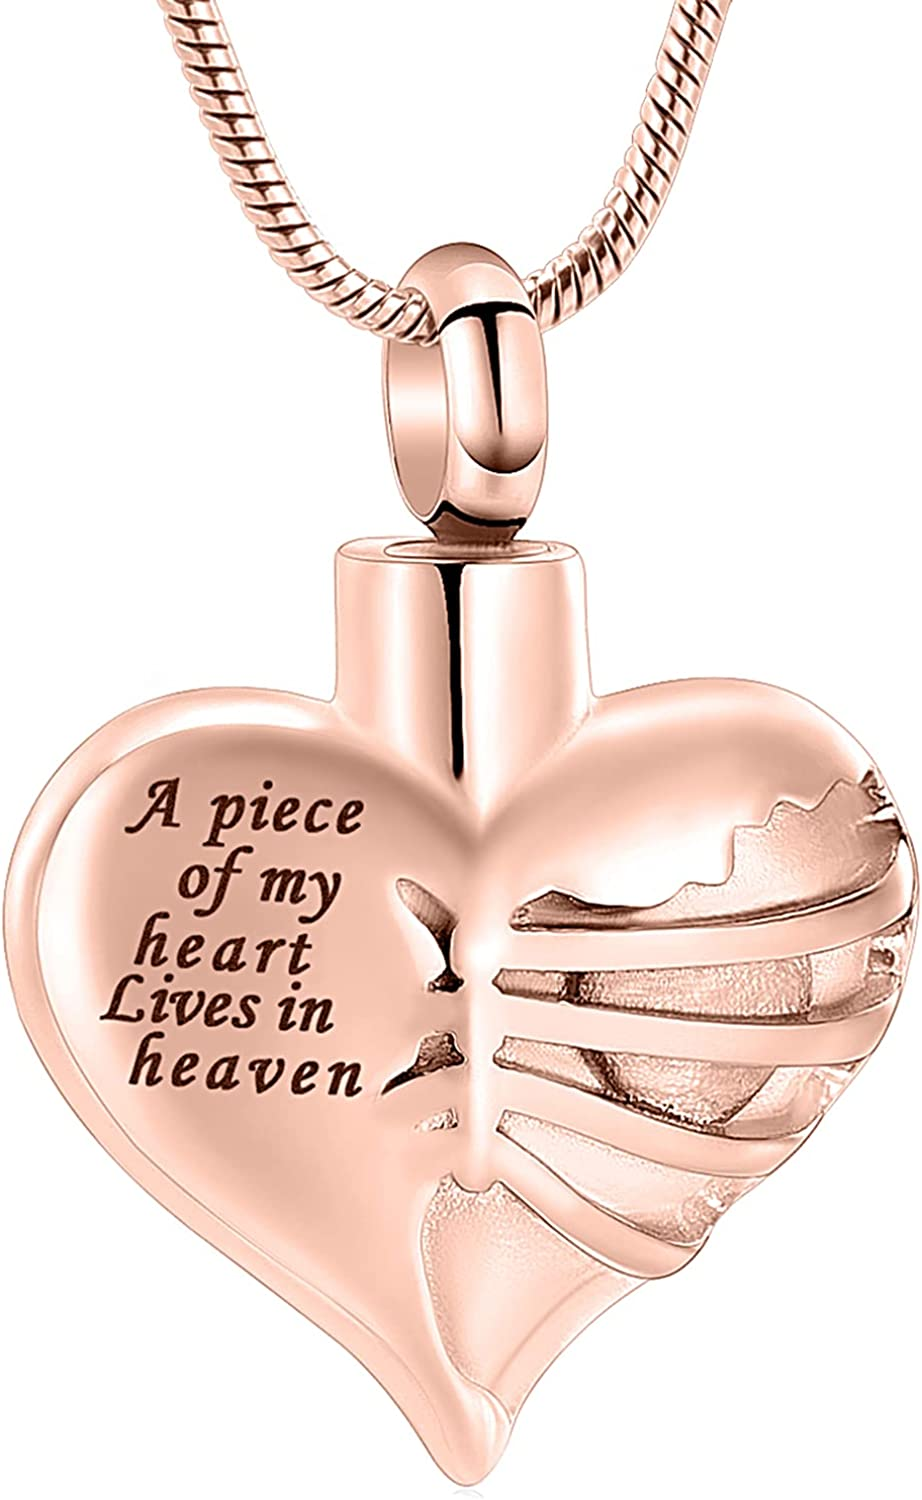 Heart Cremation Urn Necklace Pendant for Human Ashes - A Piece of My Heart Lives in Heaven Memorial Keepsakes Cremation Jewelry